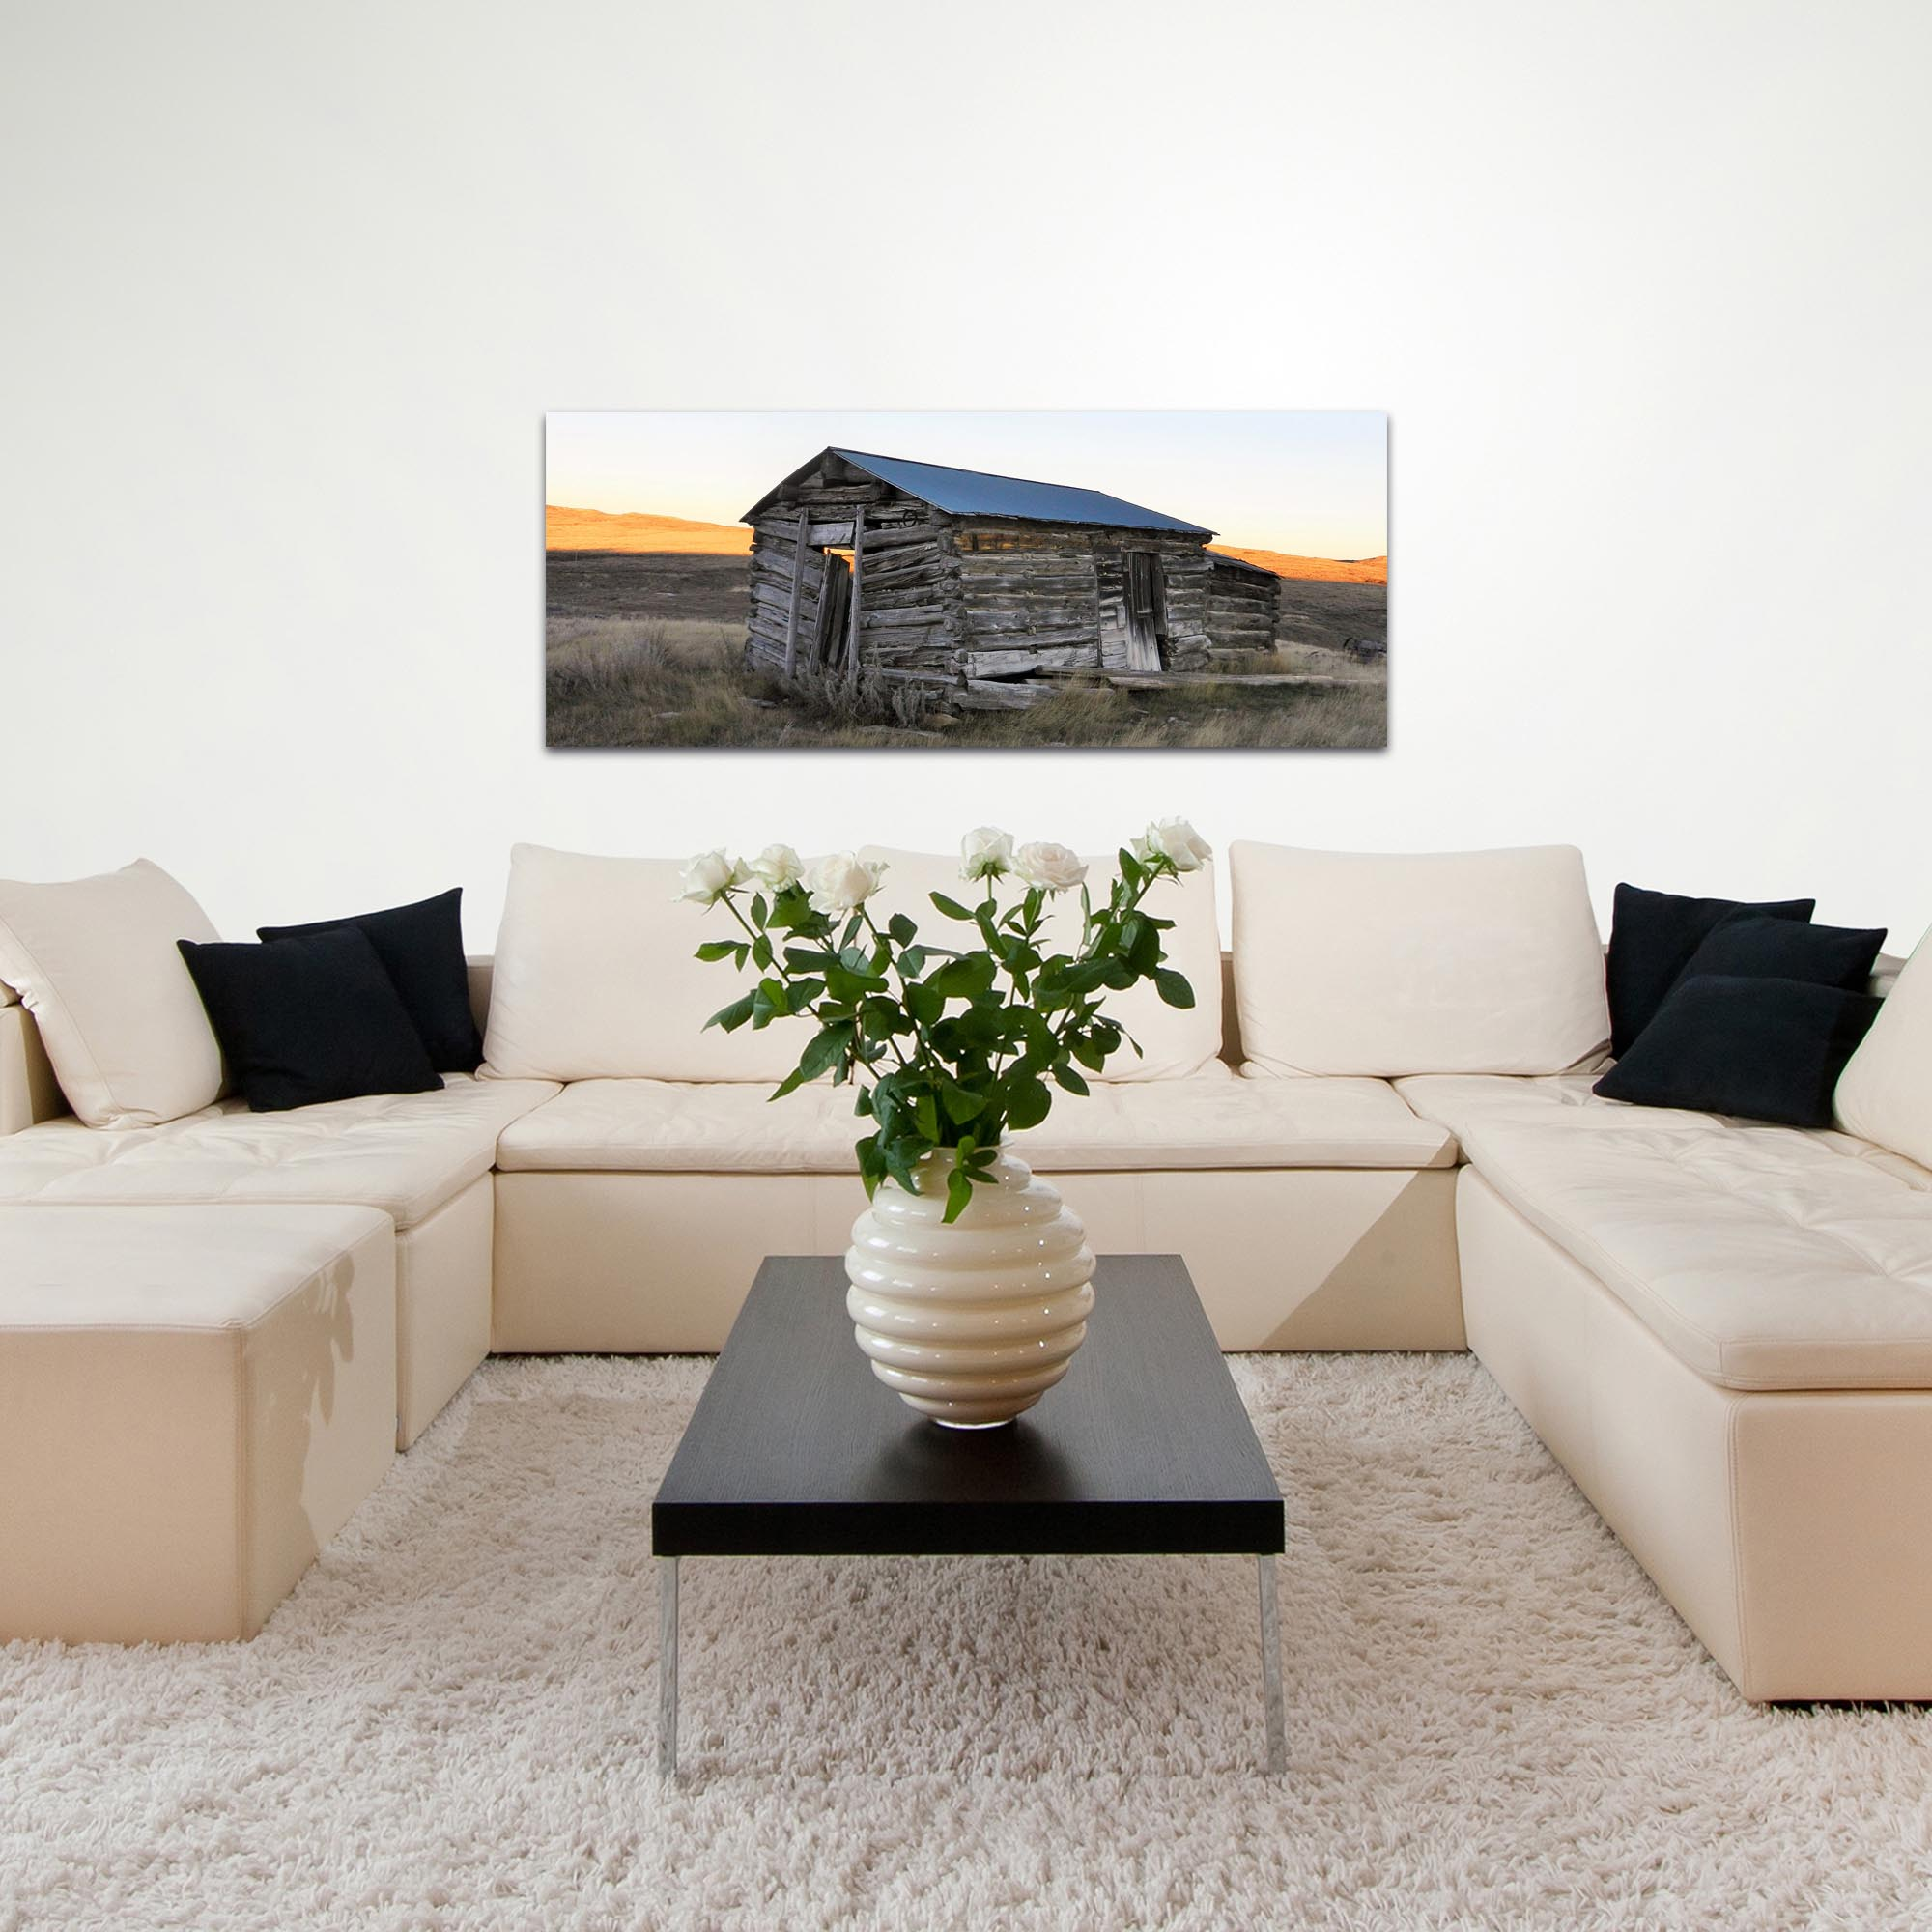 Western Wall Art 'The Log House' - American West Decor on Metal or Plexiglass - Lifestyle View